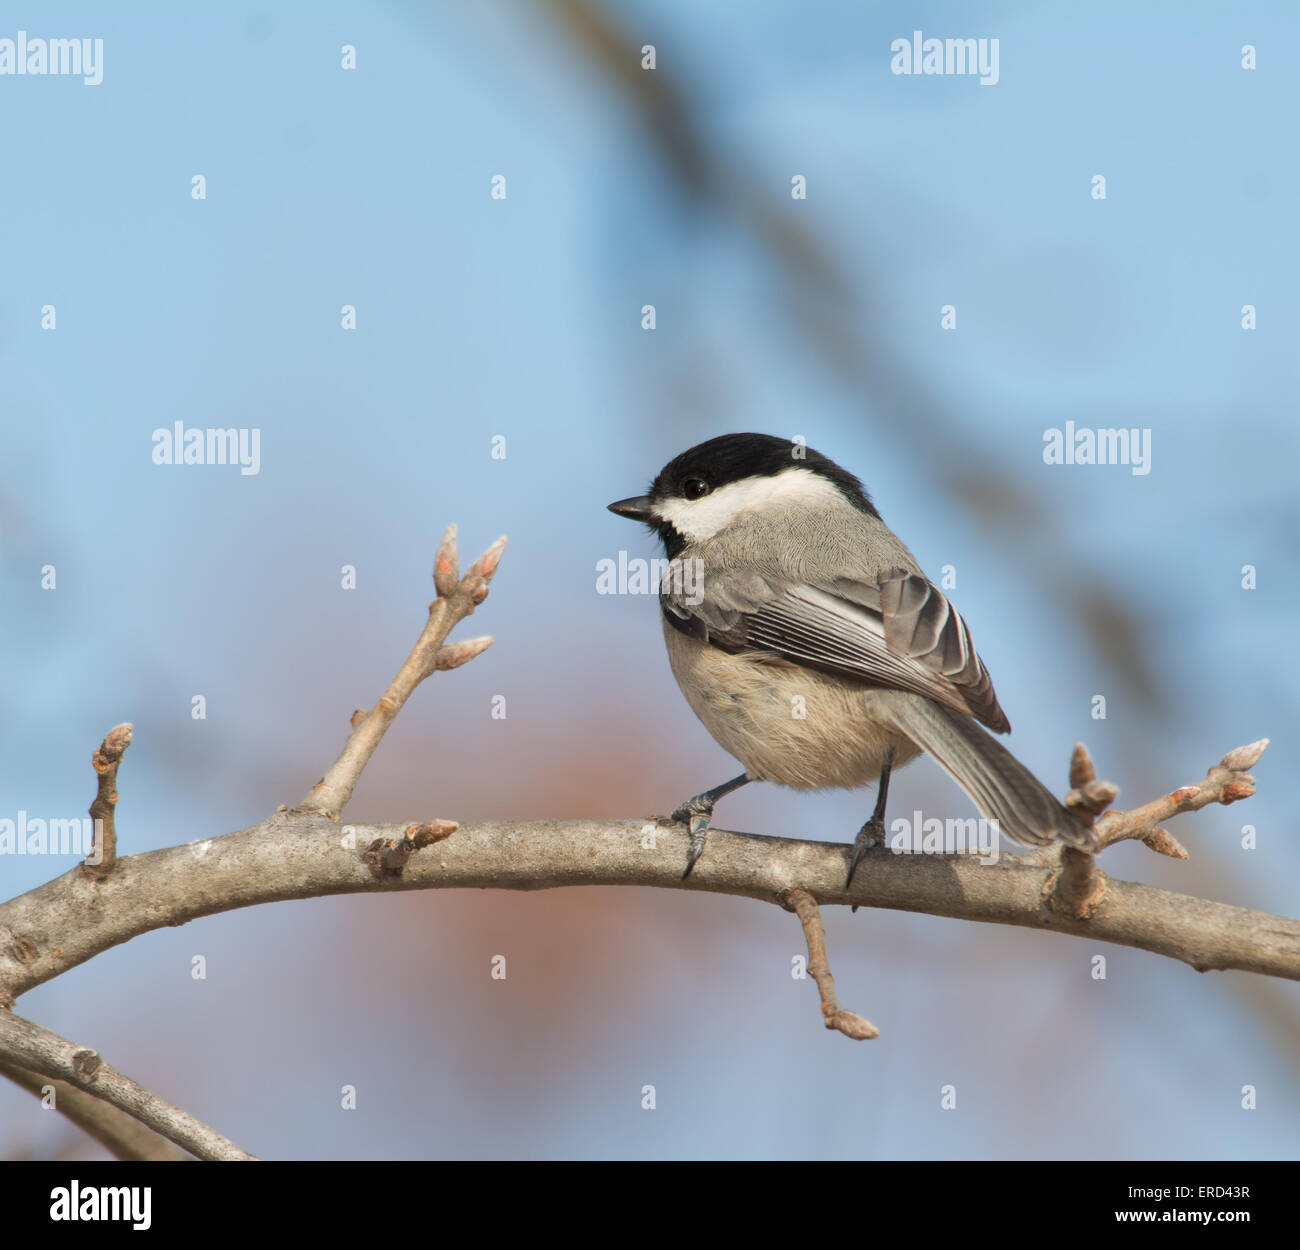 Carolina Chickadee perched on an oak limb in winter - Stock Image